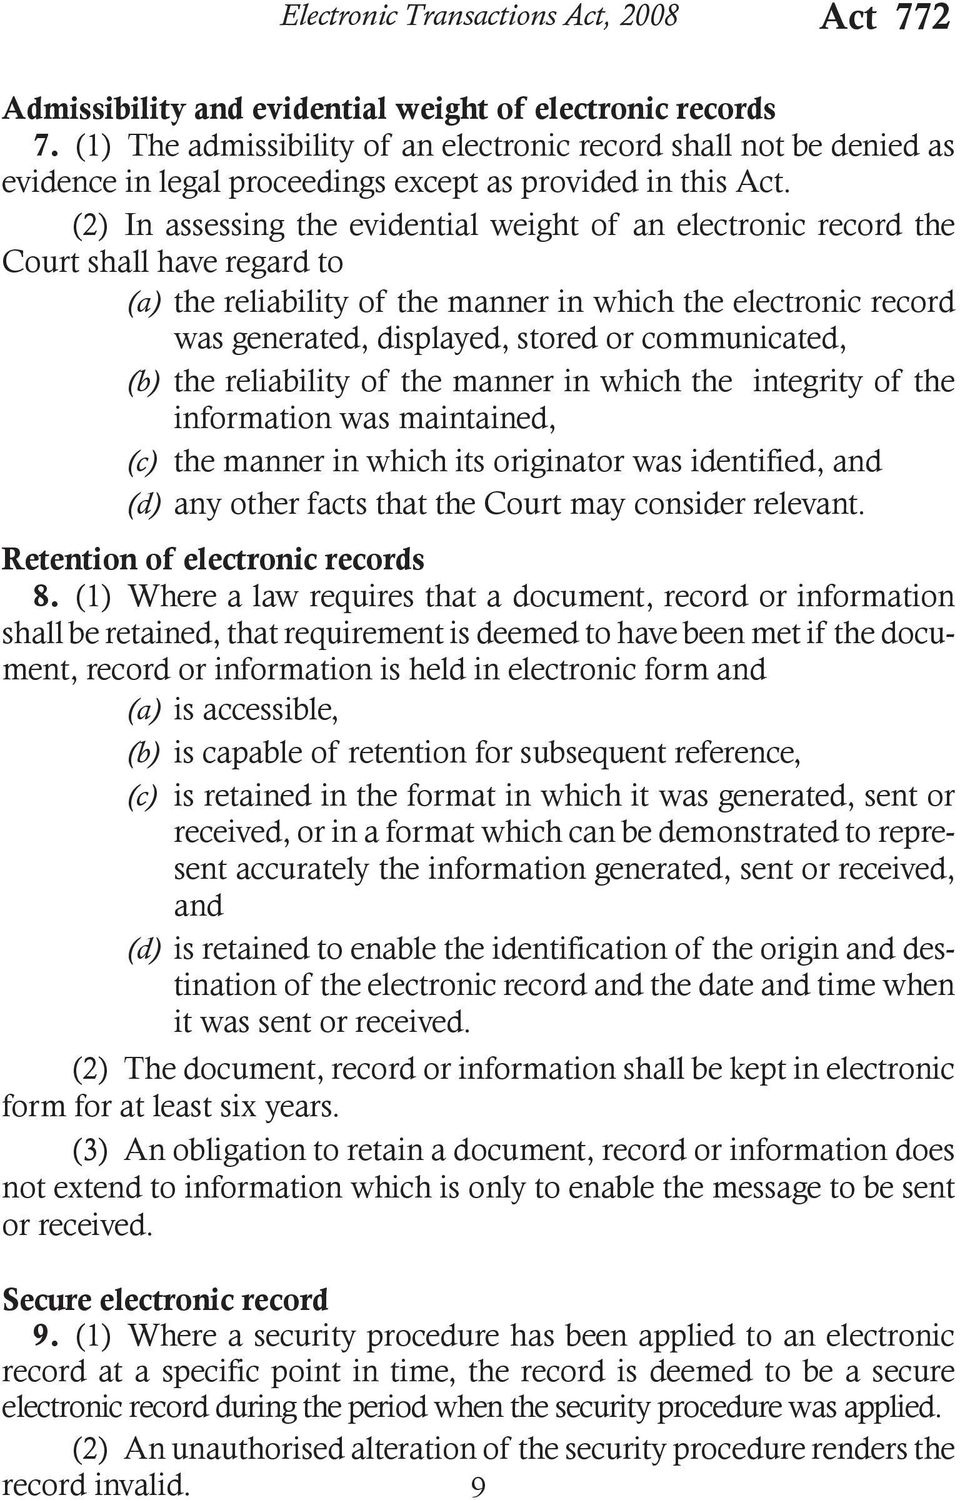 (2) In assessing the evidential weight of an electronic record the Court shall have regard to (a) the reliability of the manner in which the electronic record was generated, displayed, stored or